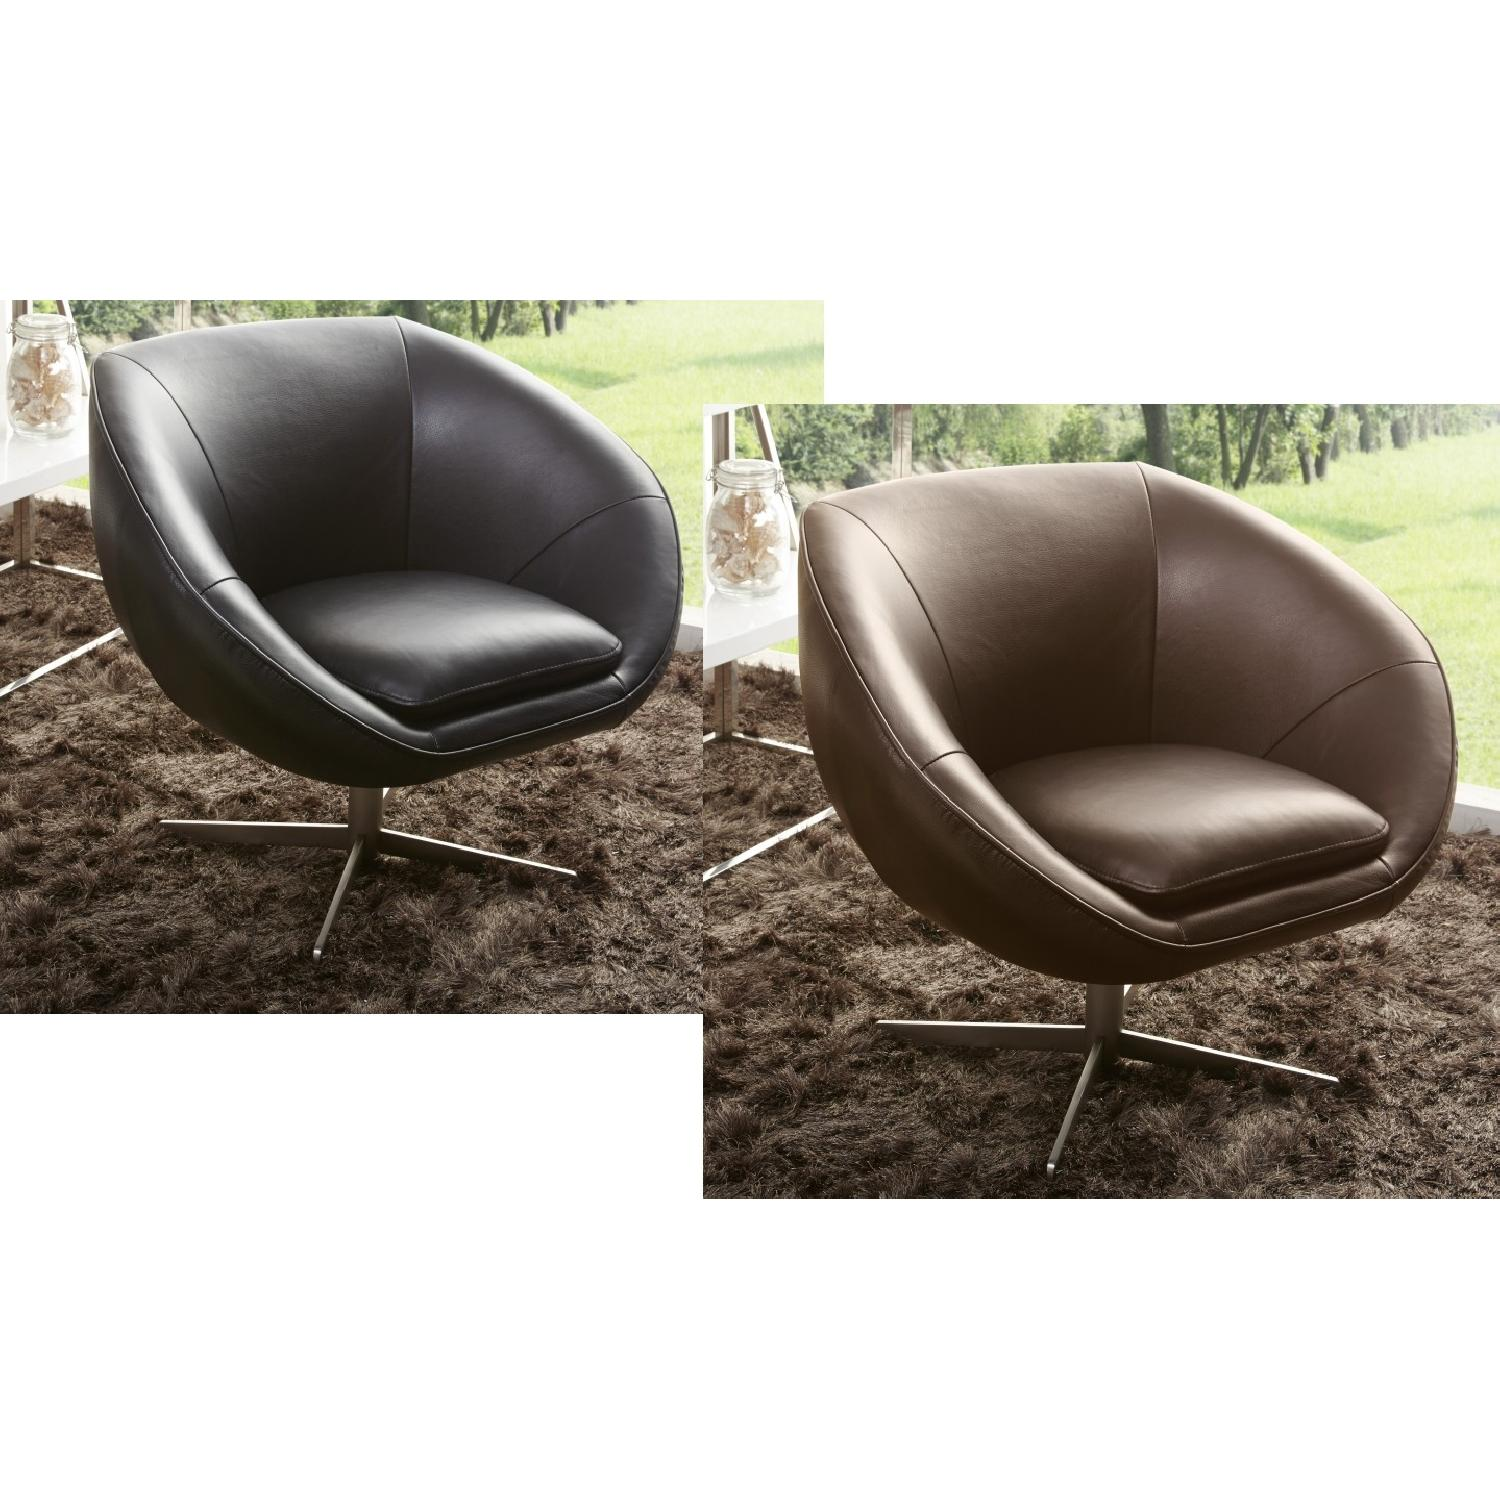 Modern Swivel Accent Chair in Black Premium Leather w/ Matching Faux Leather & Chrome Base - image-2